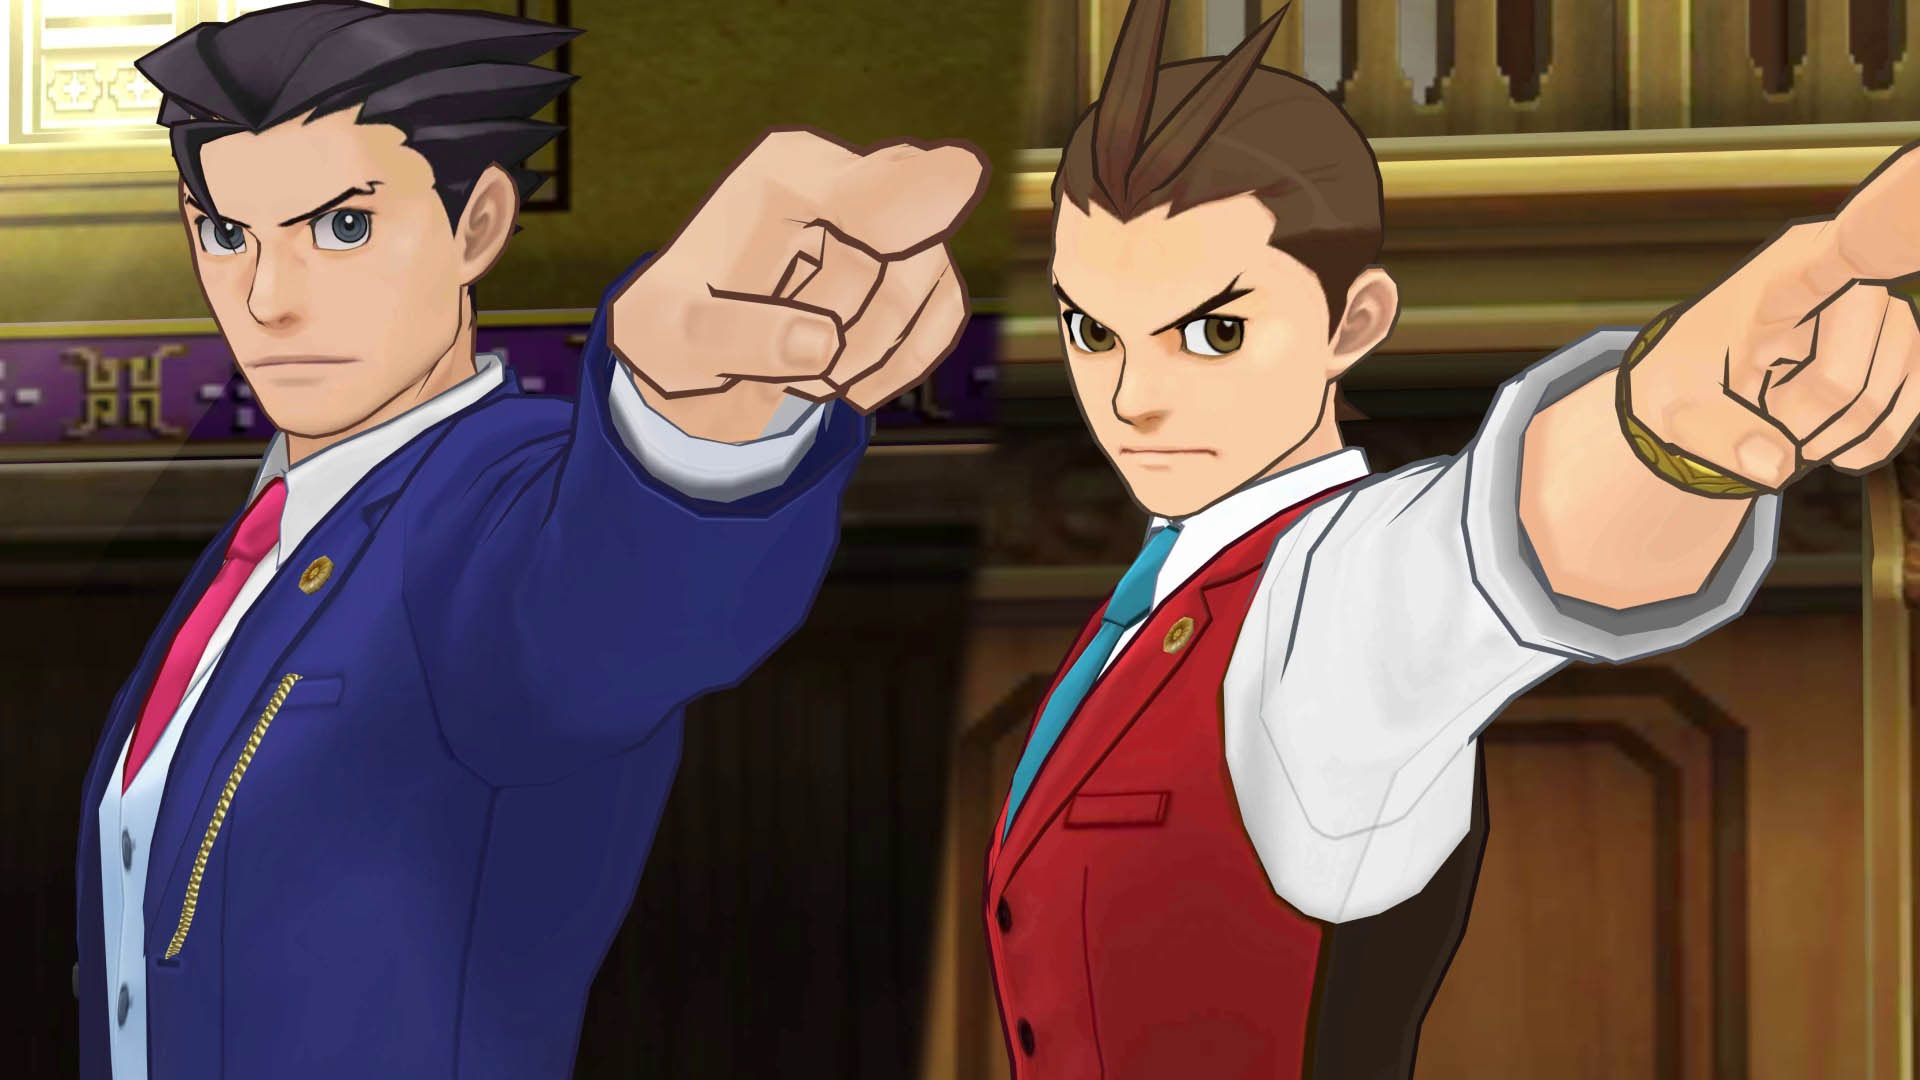 New english trailer for Ace Attorney: Spirit of Justice with release date | Gamespresso